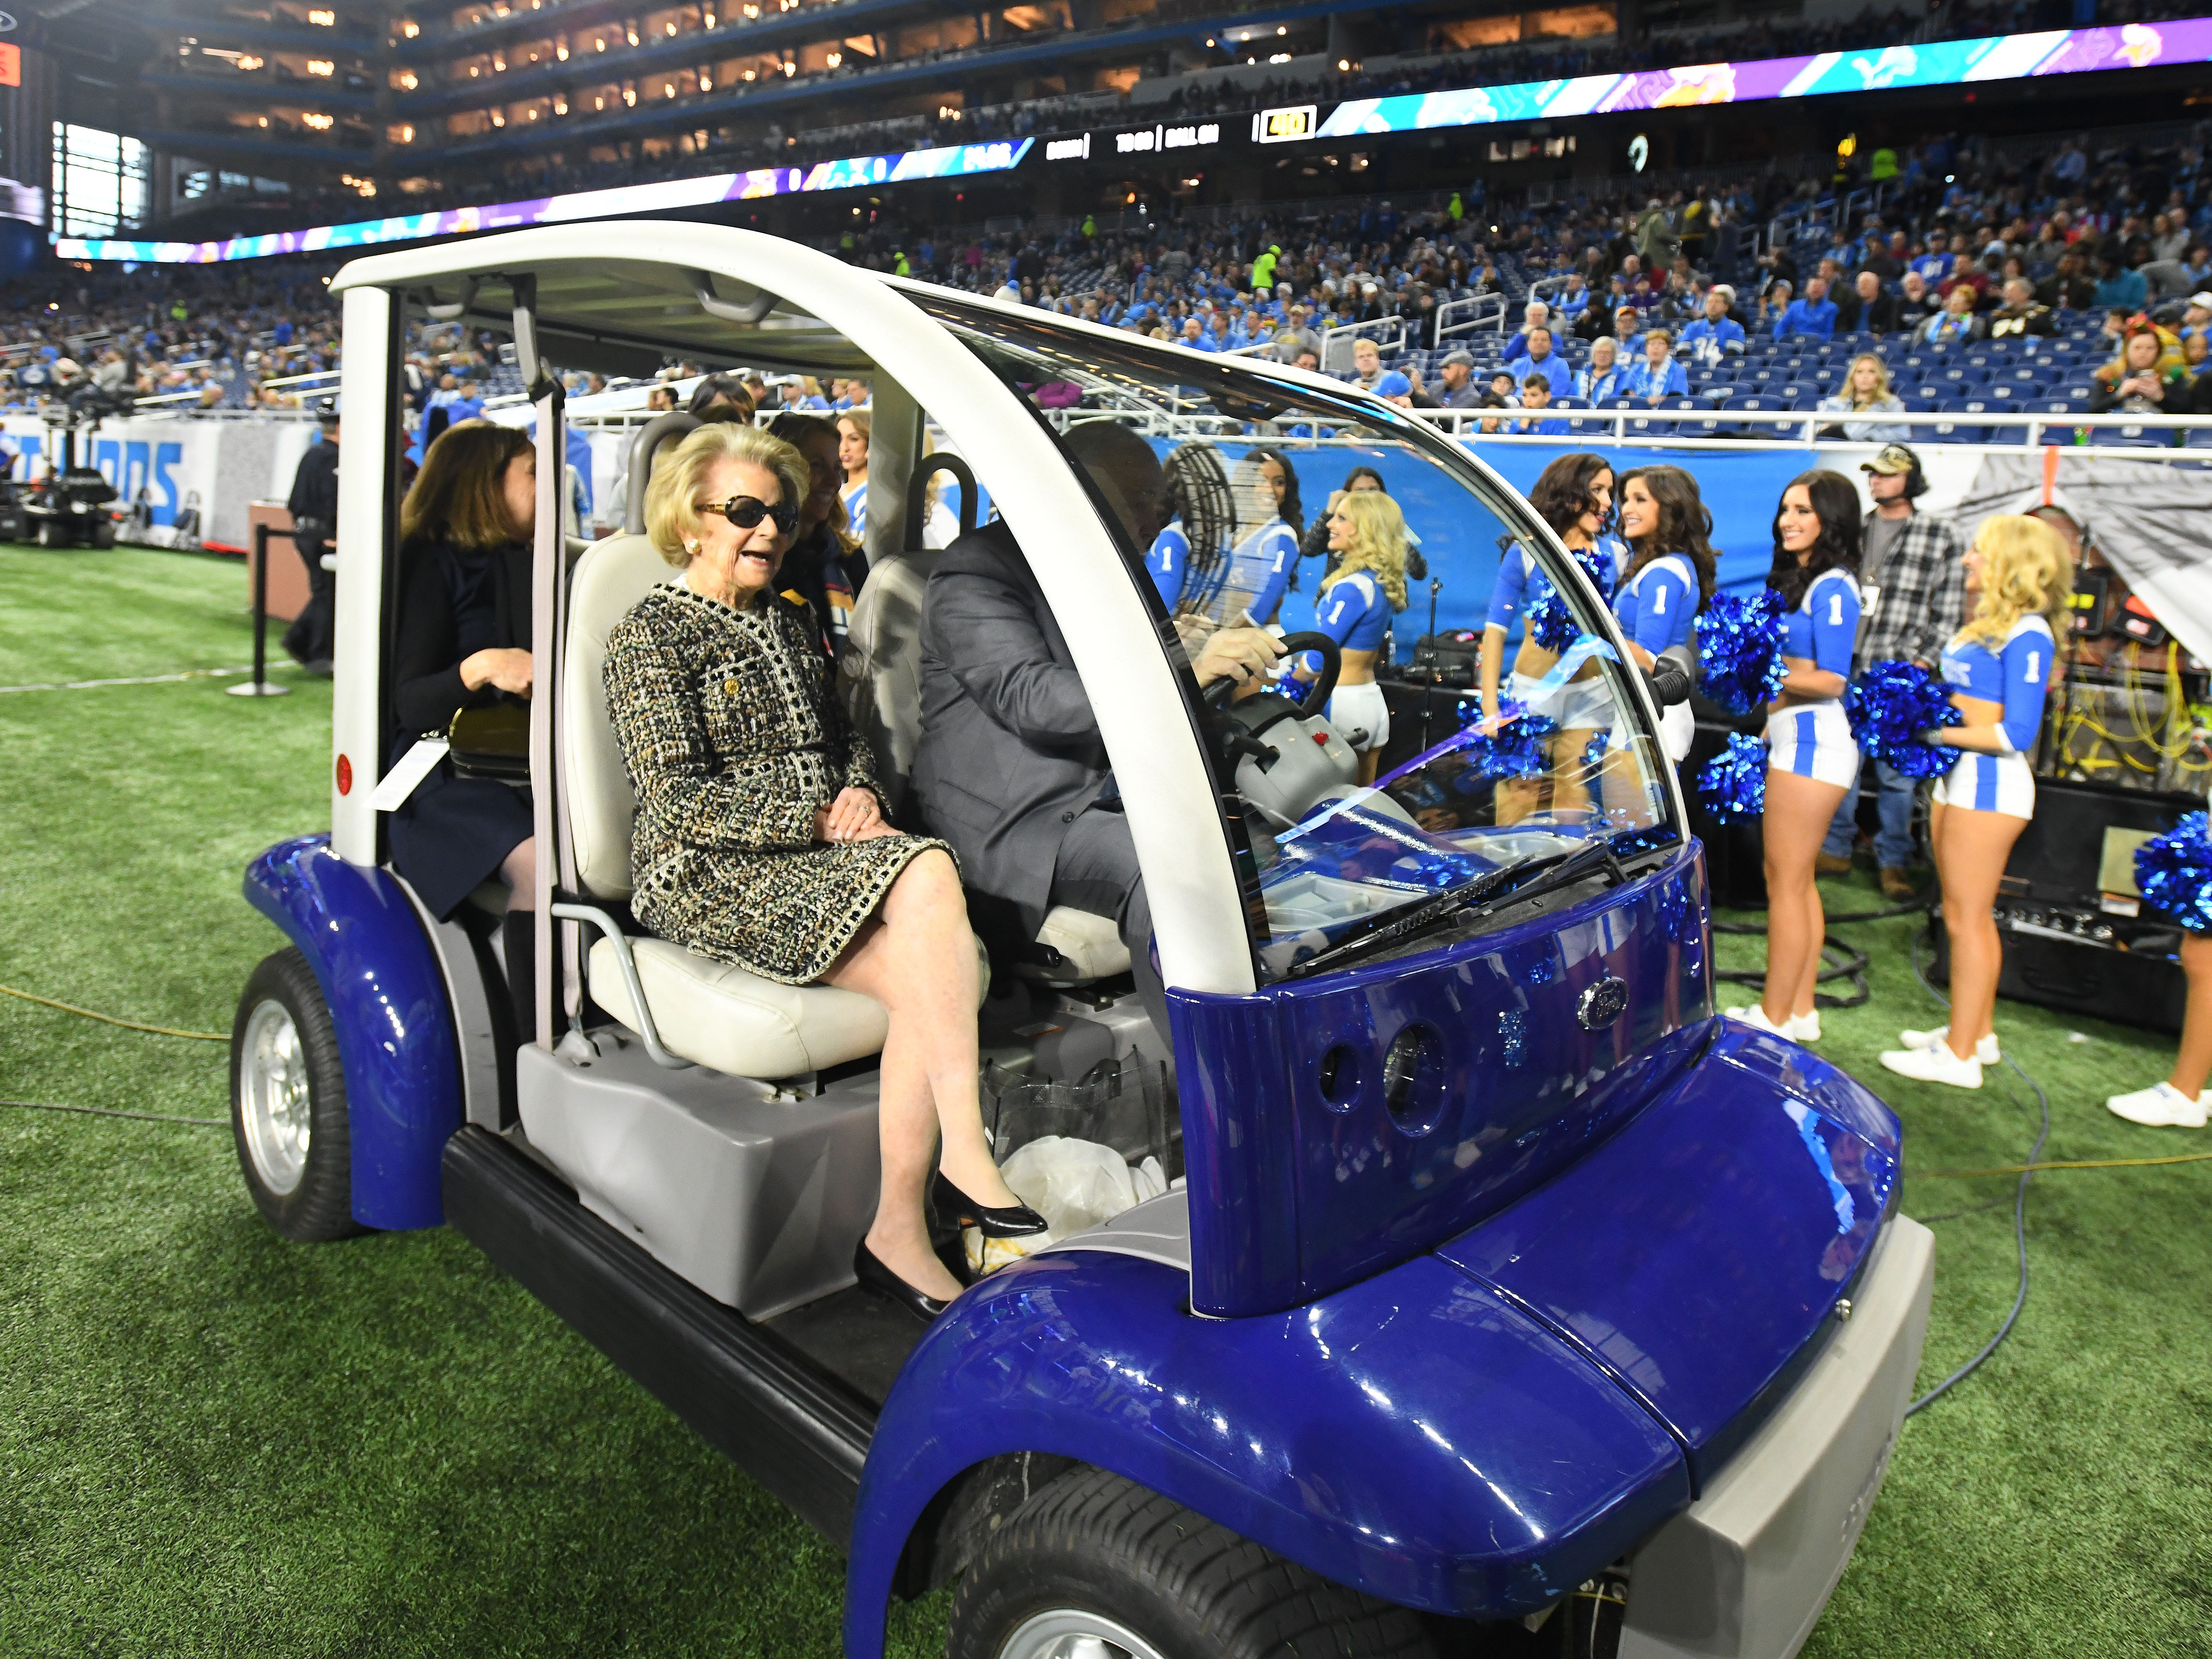 Detroit Lions owner Martha Ford heads back up the tunnel after warmups before Detroit took on the Minnesota Vikings.